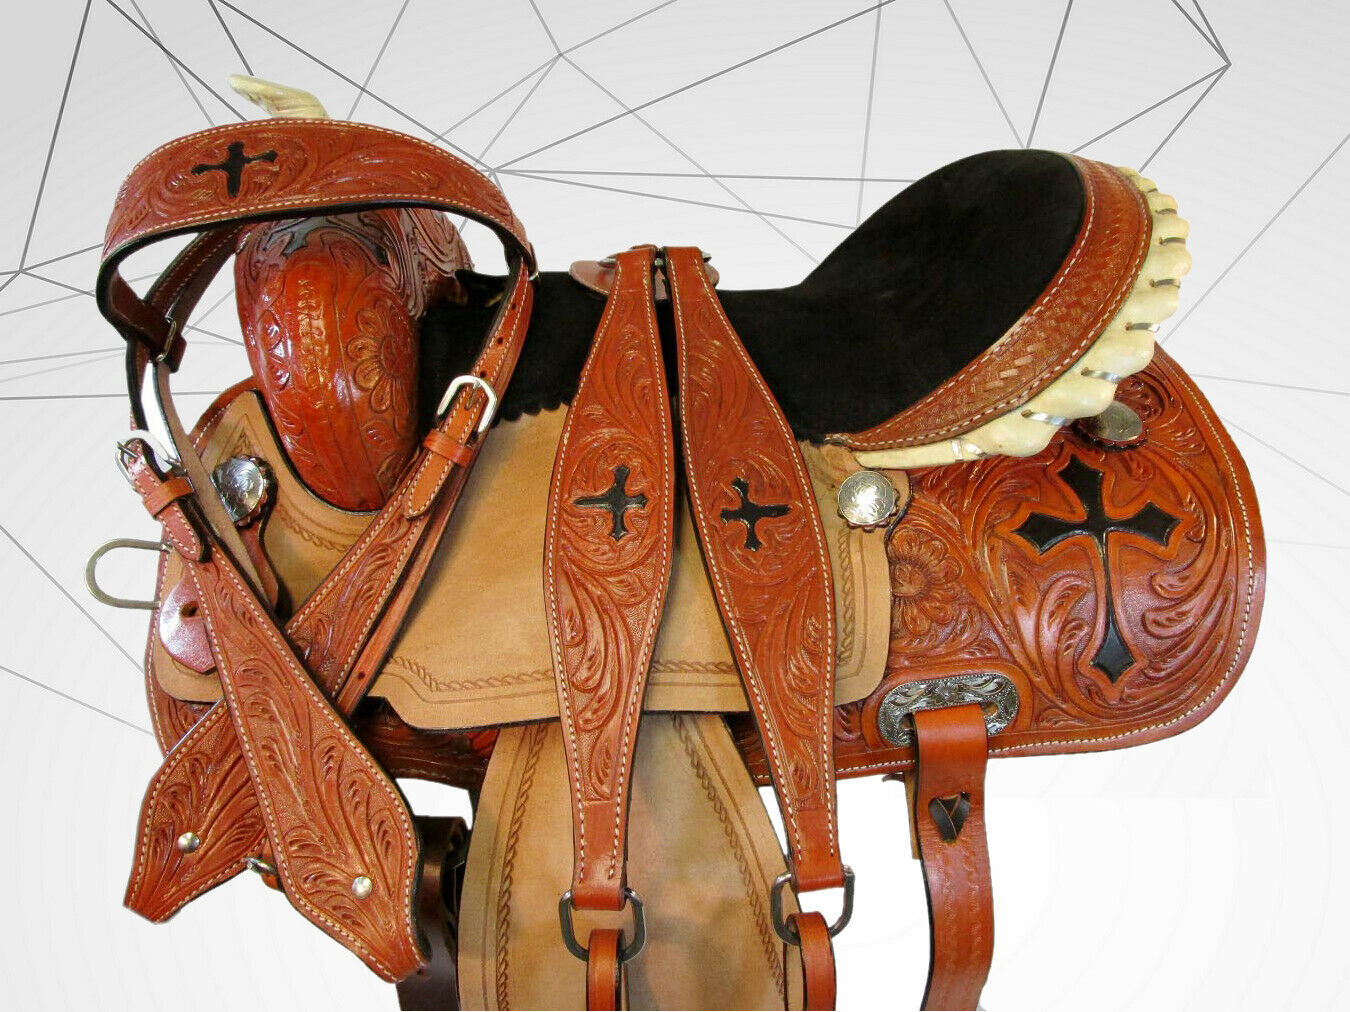 WESTERN  SHOW RODEO EVENT PARADE CROSS TOOLED BARREL RACING WESTERN SADDLE 15 16  free delivery